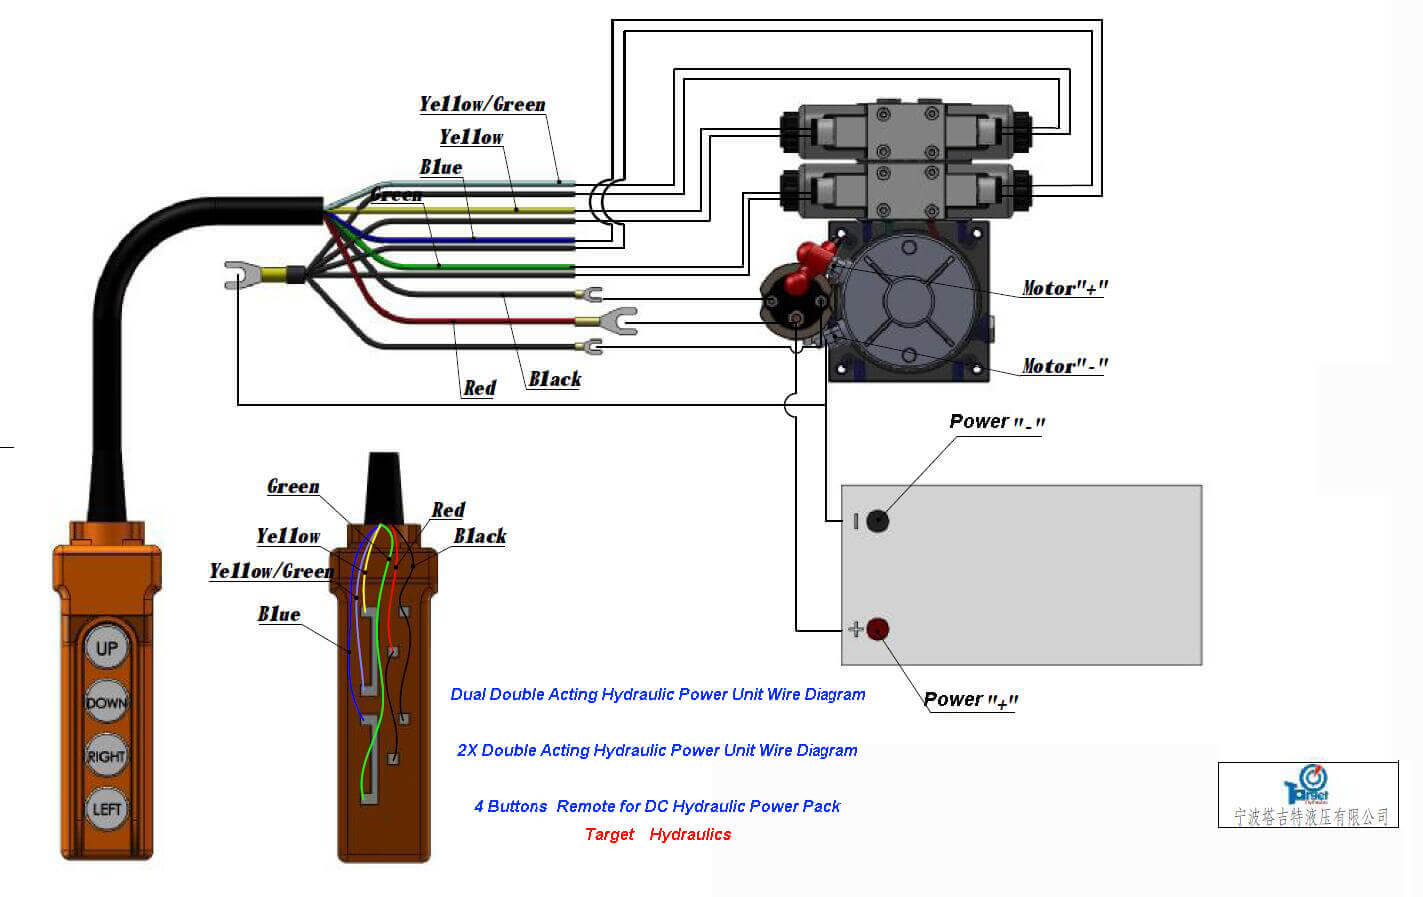 dual double acting hydraulic cylinder Power Units Wiring Diagram drawing how to wire hydraulic power pack,power unit diagram design  at pacquiaovsvargaslive.co